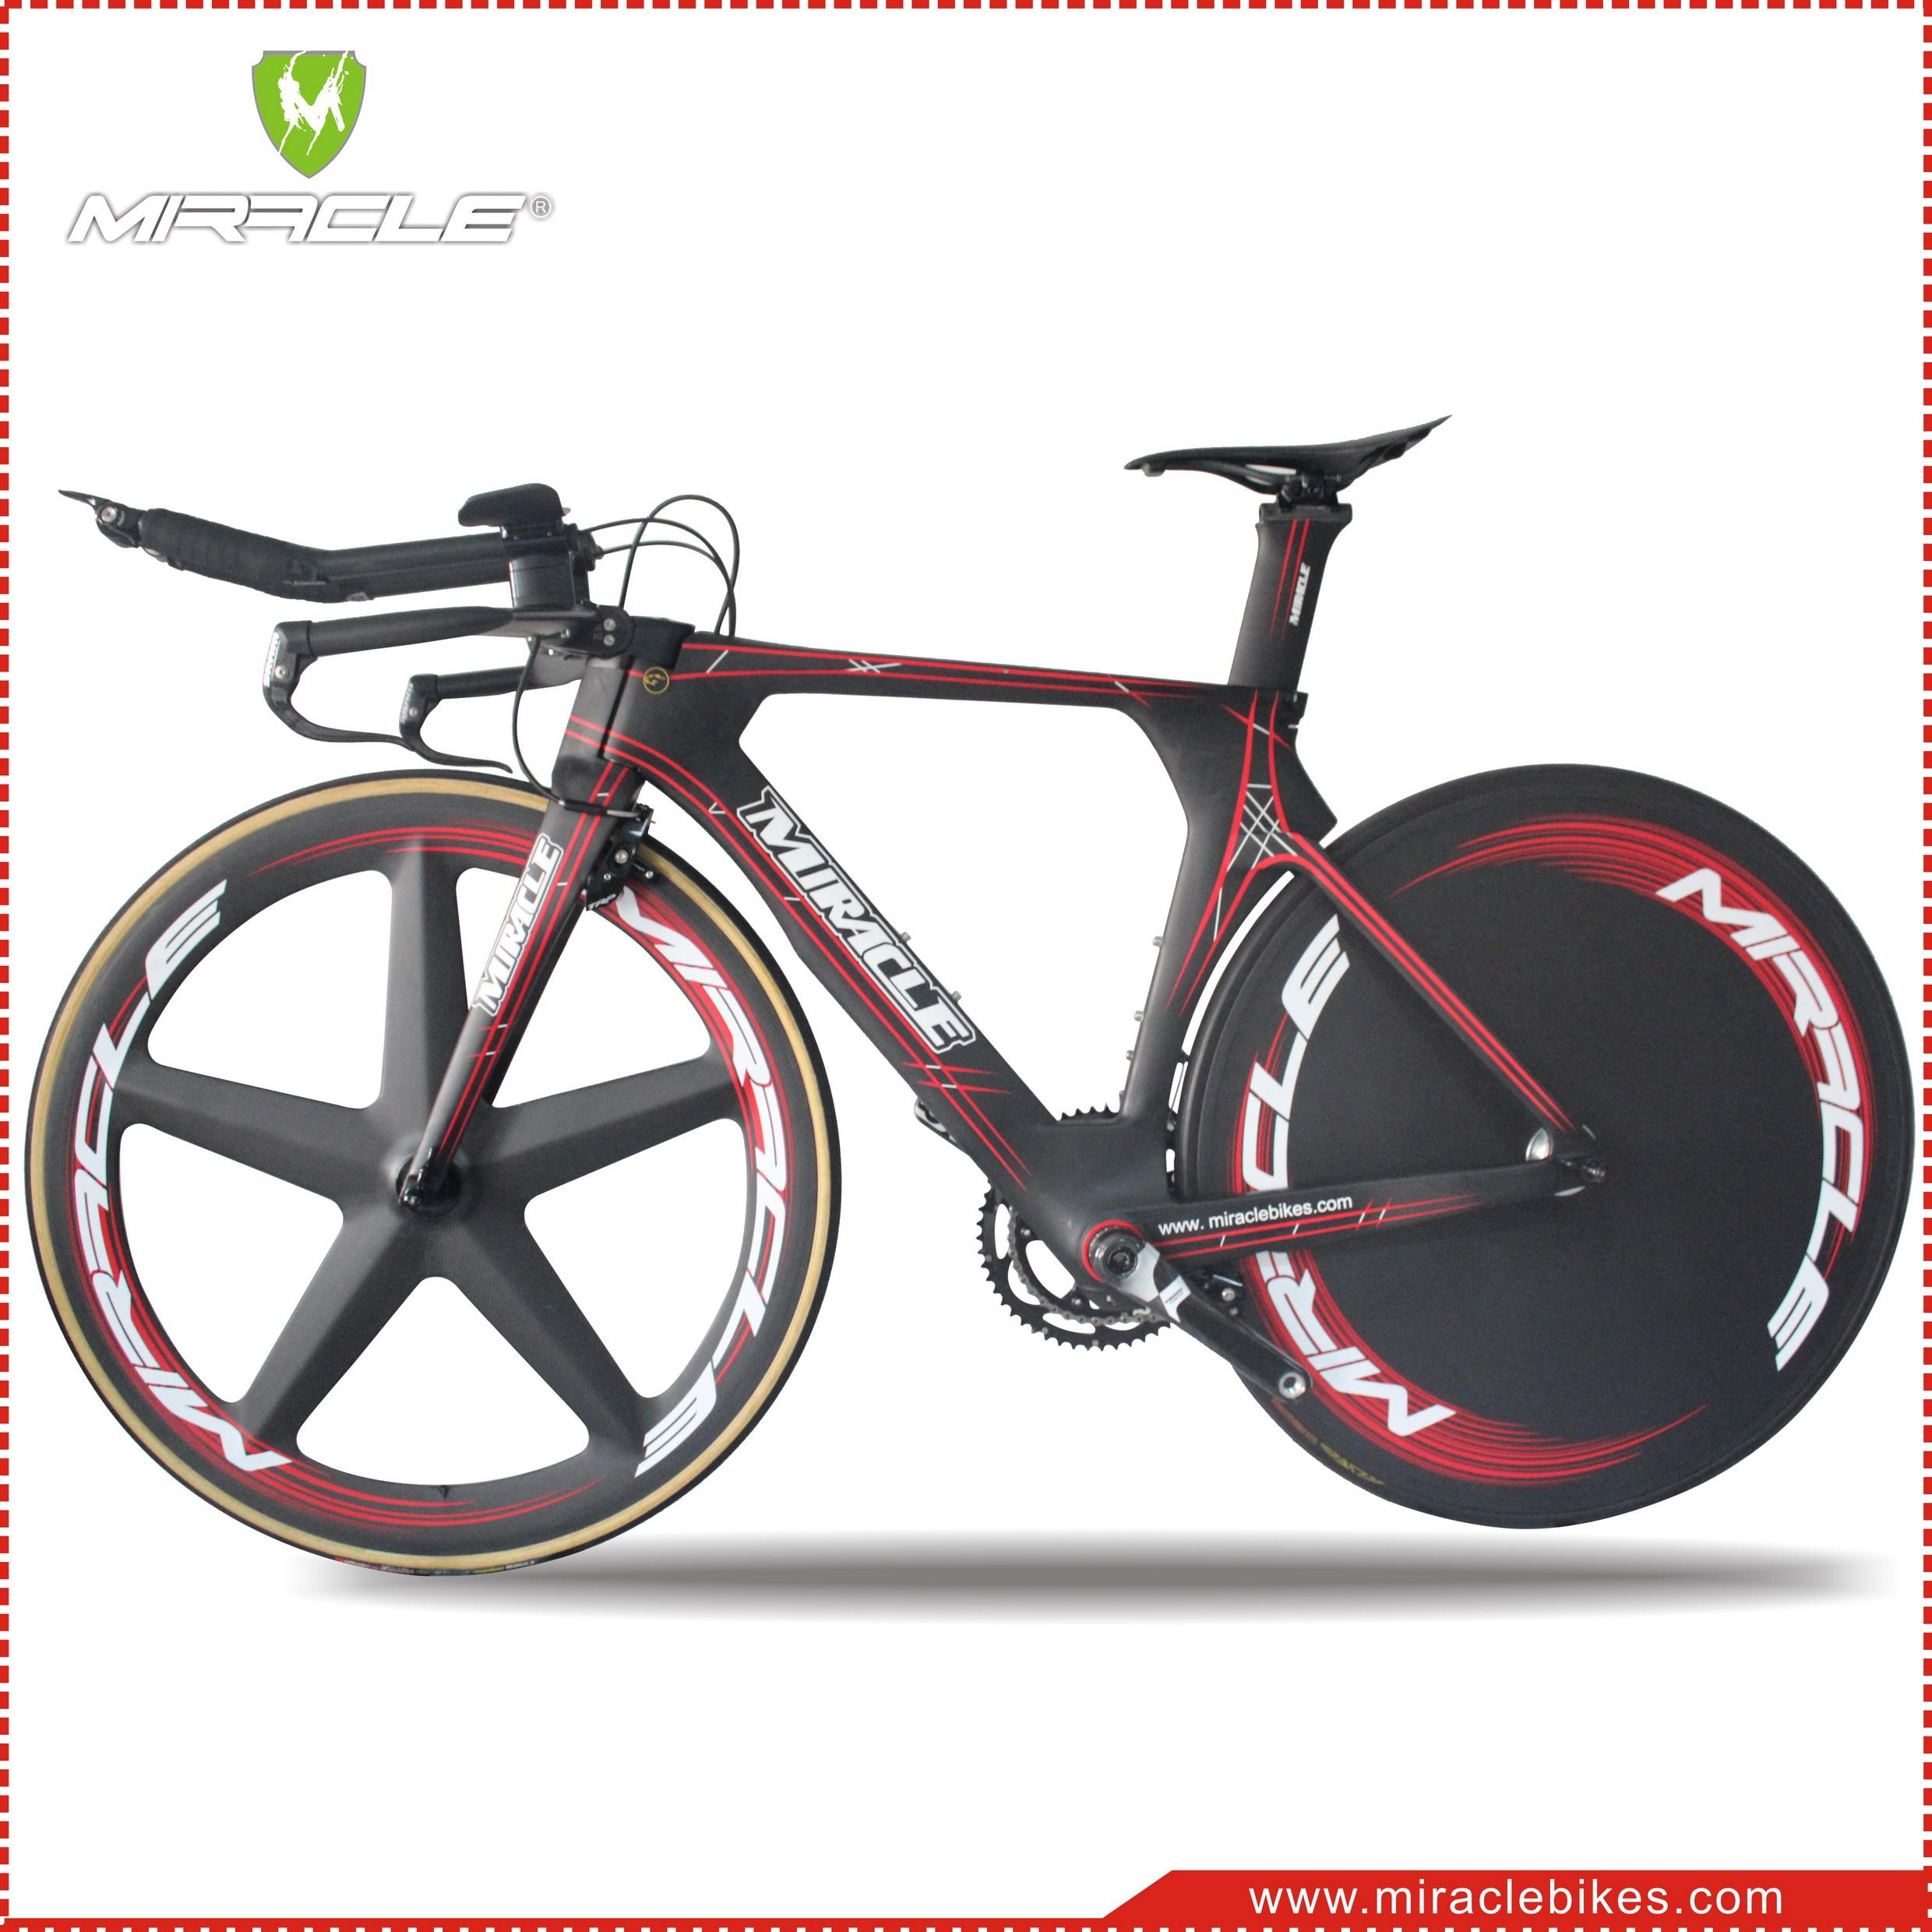 2016 Time Trial Bicycle Miracle Carbon Fiber Triathlon Bike 52cm